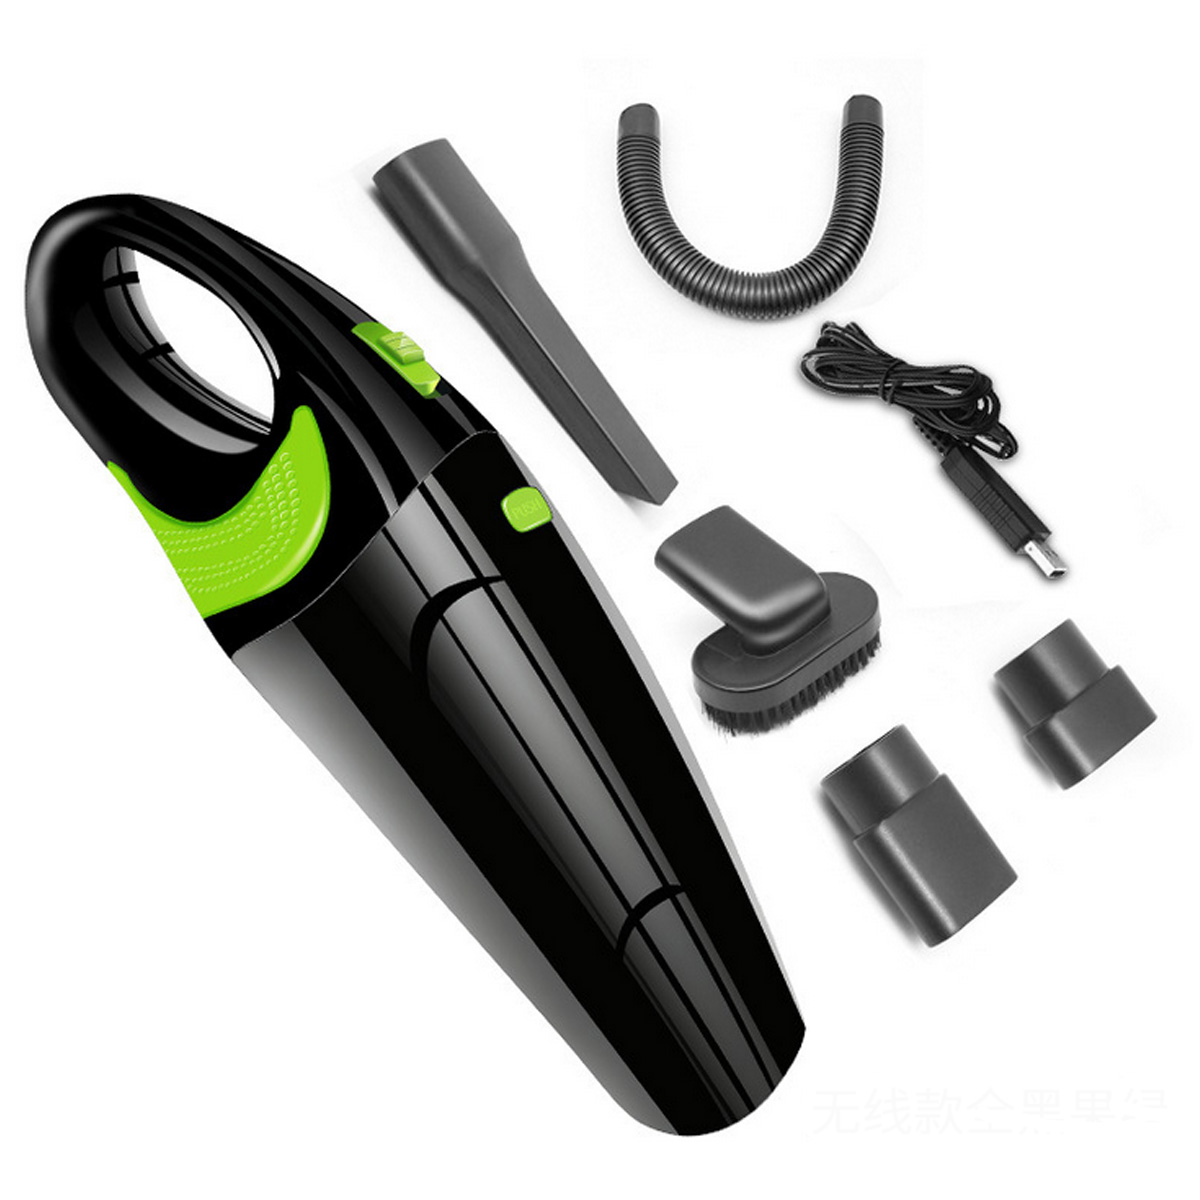 Vacuum Cleaner for Home Car 220V Mini Cordless Vacuum Cleaner Hand Dust Collector Dry Wet Aspirador Car CleanerVacuum Cleaner for Home Car 220V Mini Cordless Vacuum Cleaner Hand Dust Collector Dry Wet Aspirador Car Cleaner